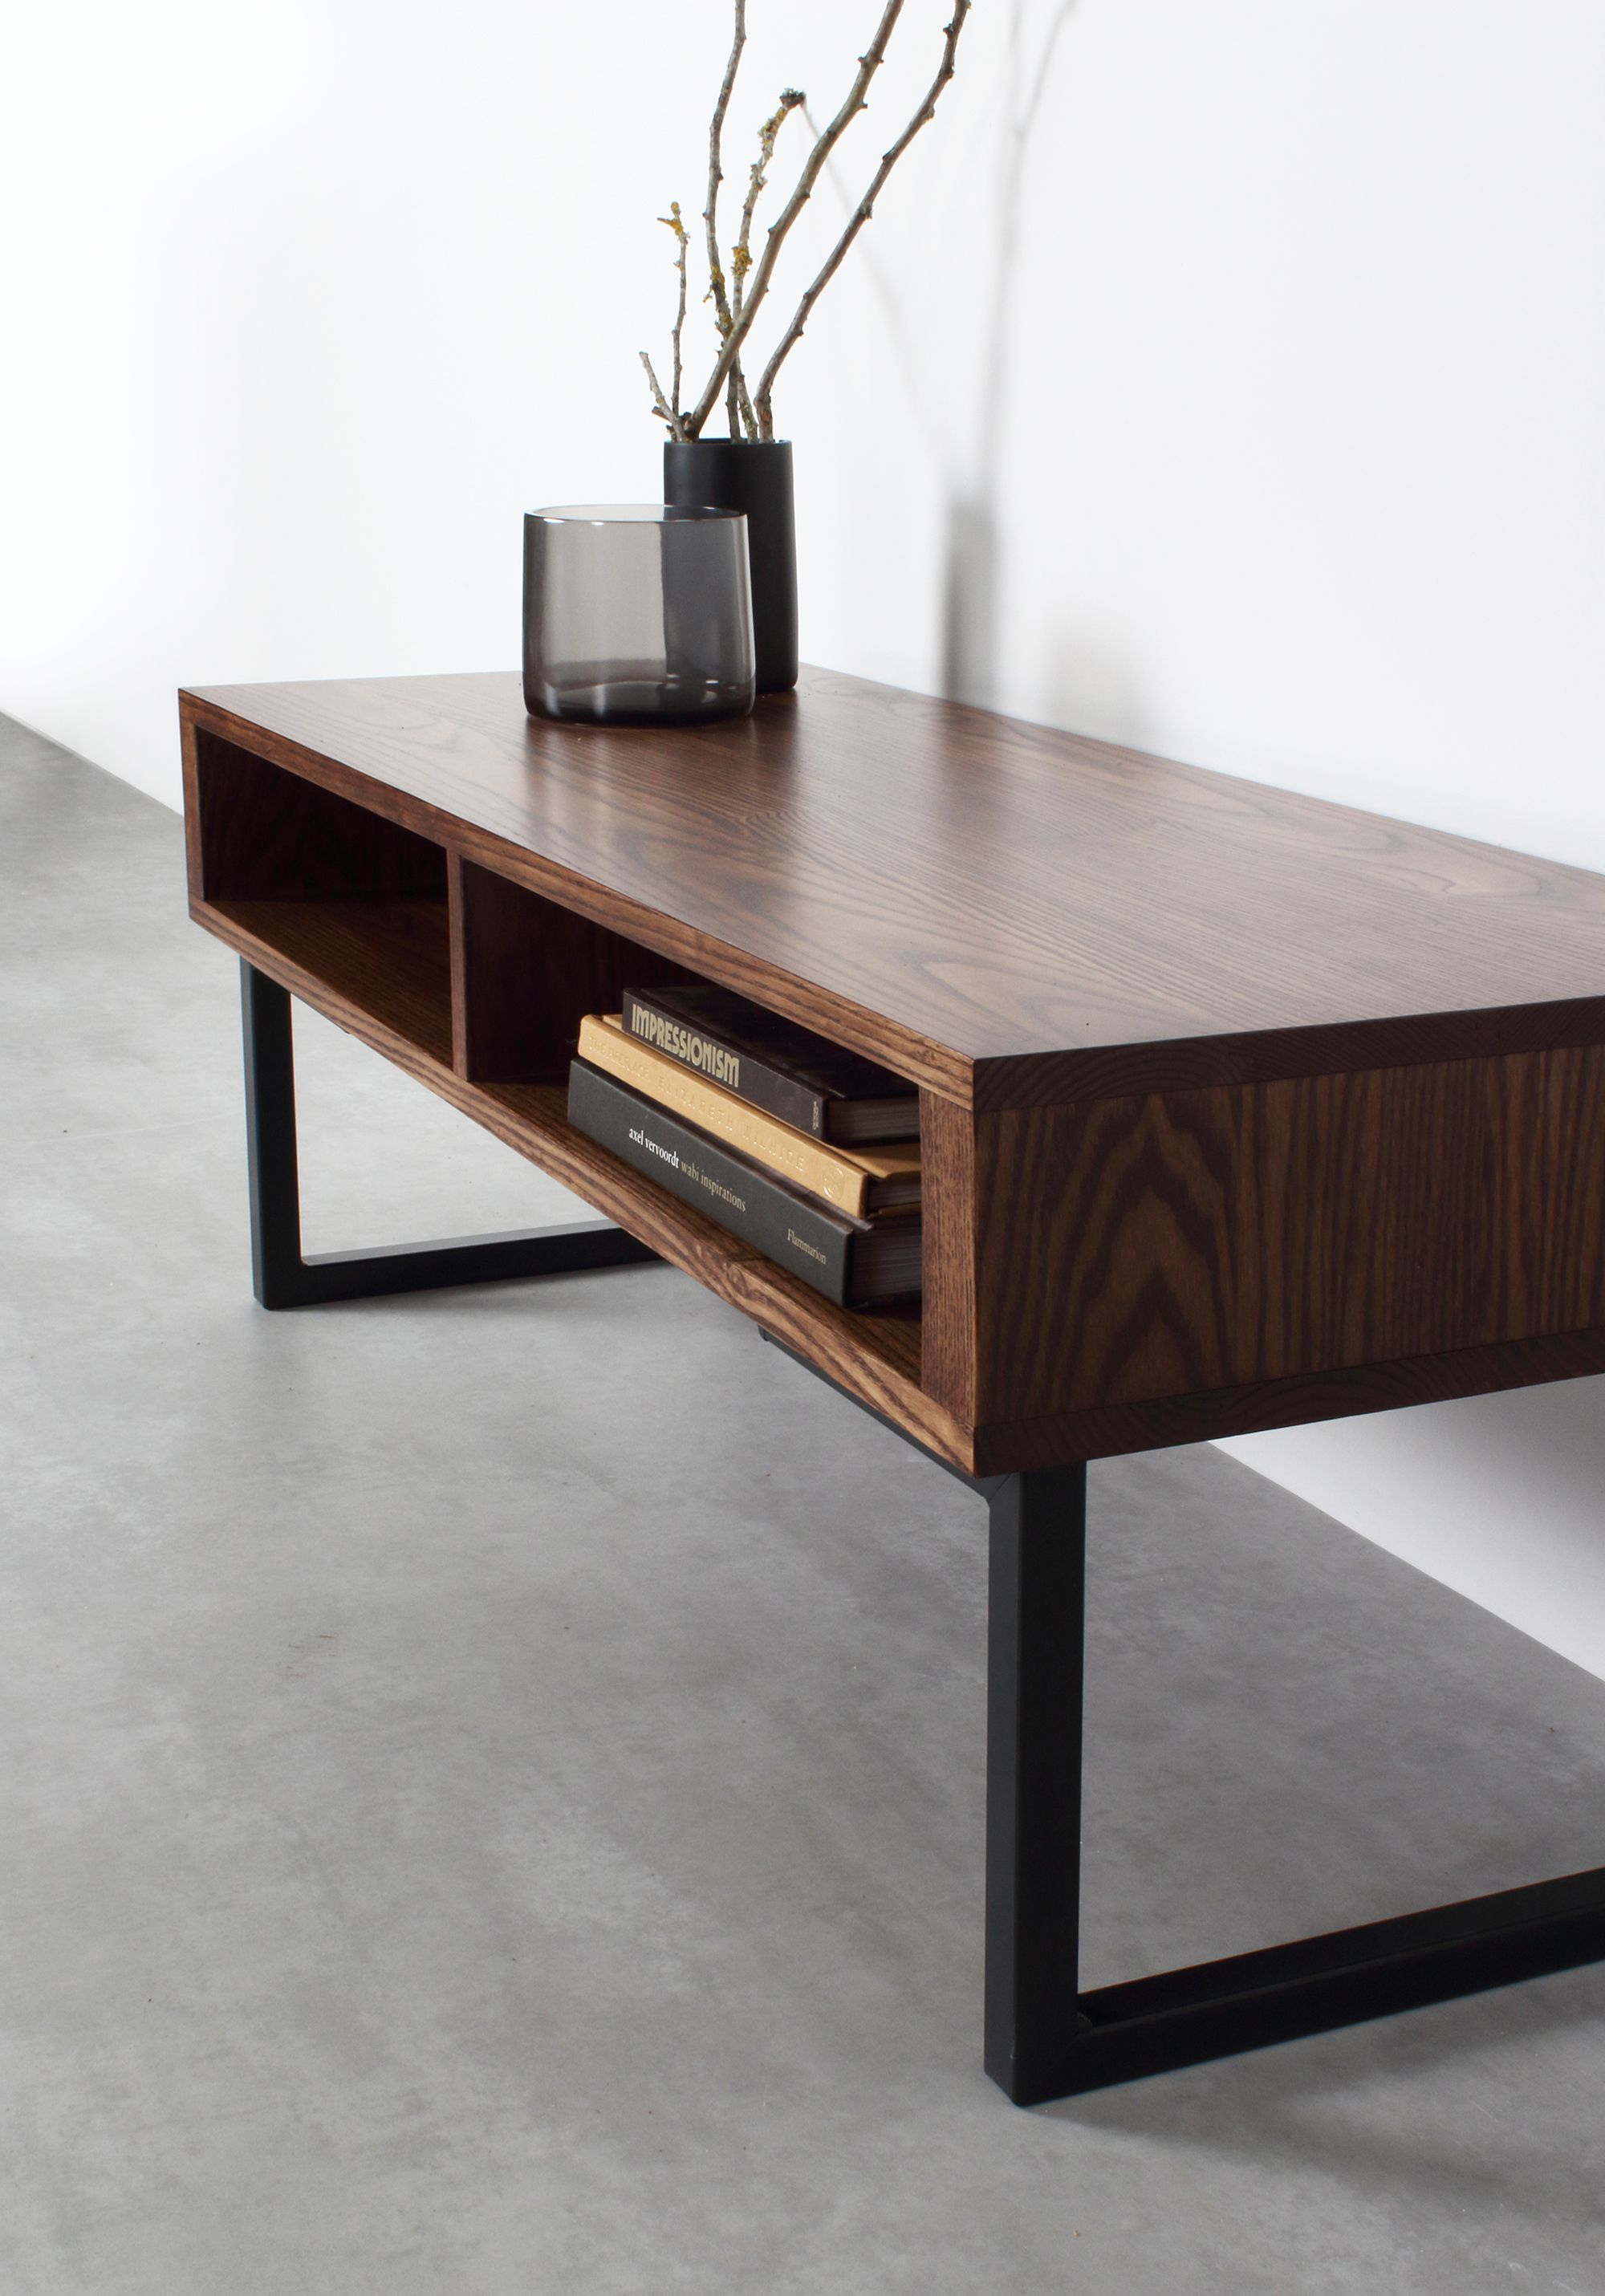 Minimalist Solid Ash Oak Or Walnut Tv Stand Or Coffee Table Customisable Design Made In The Uk Minimalist Furniture Design Minimalist Furniture Coffee Table